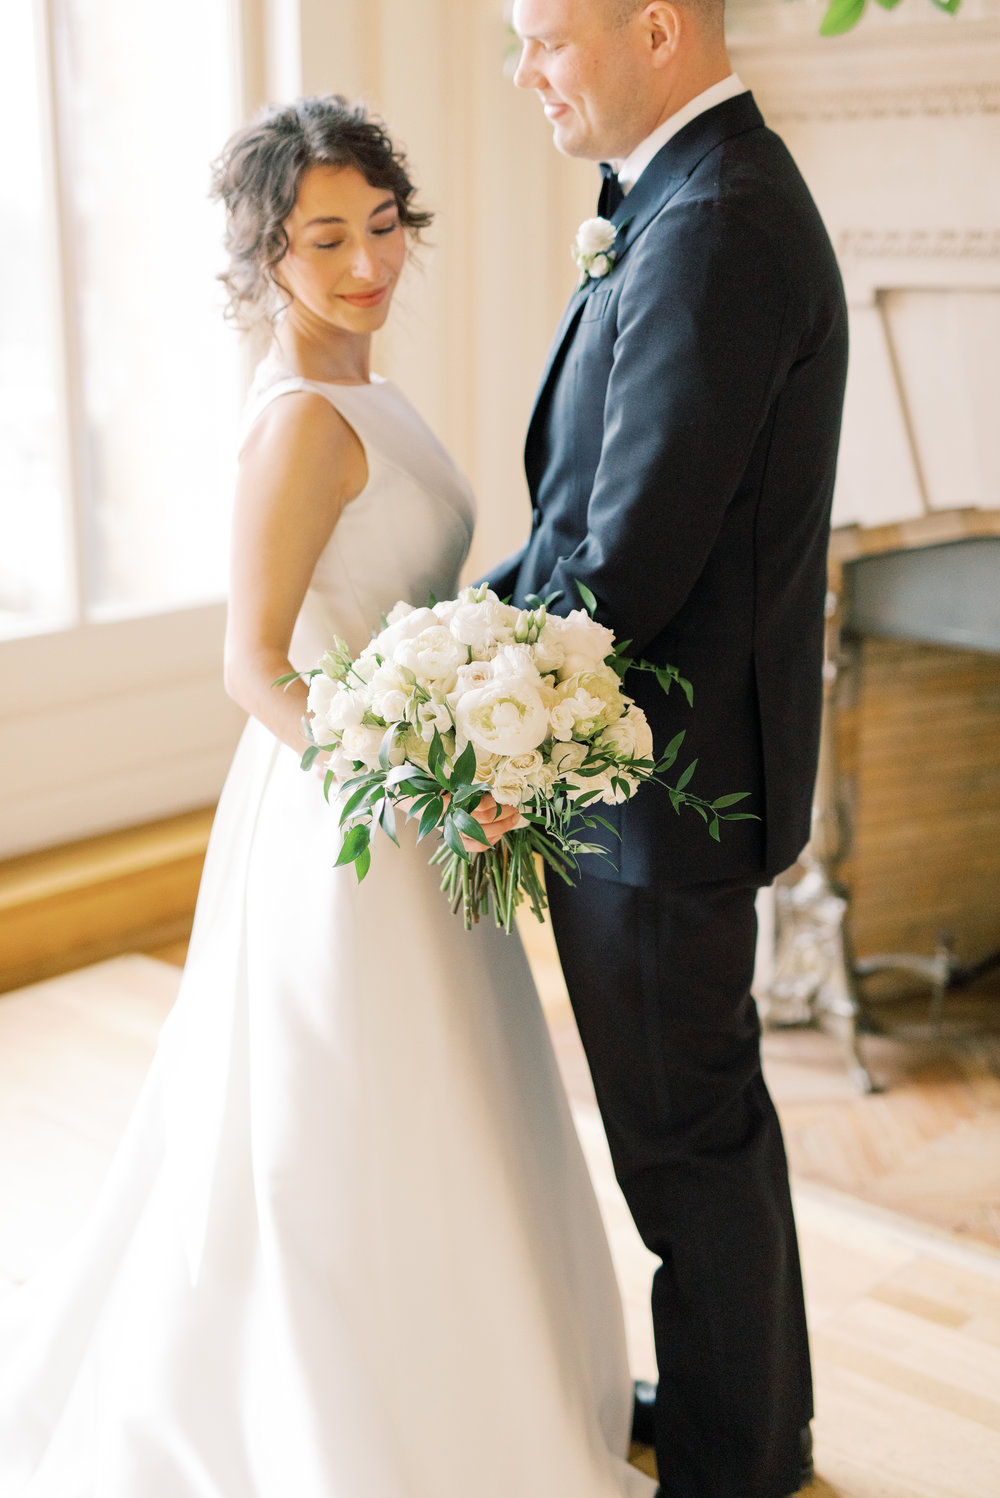 This white bouquet with trailing greens added the perfect classic touch for this romantic and classic wedding day for their french inspired green and white Cairnwood Estate wedding